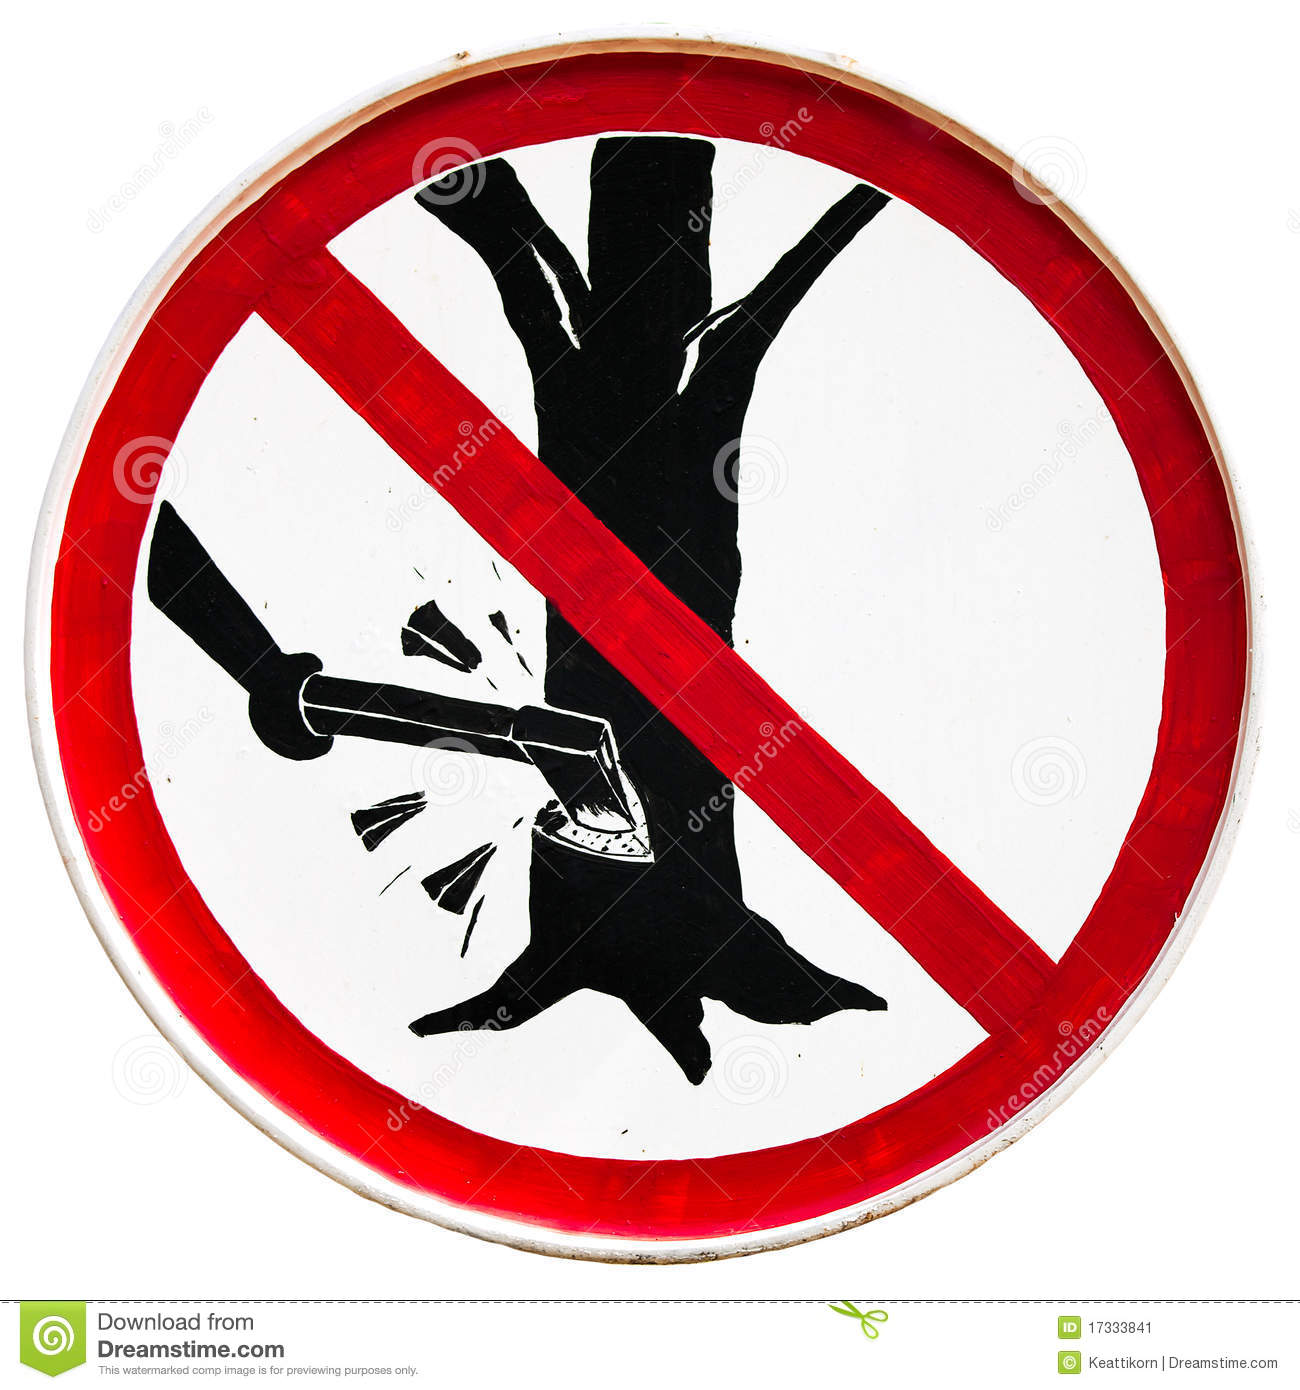 Do Not Cut Tree Sign Stock Image - Image: 17333841